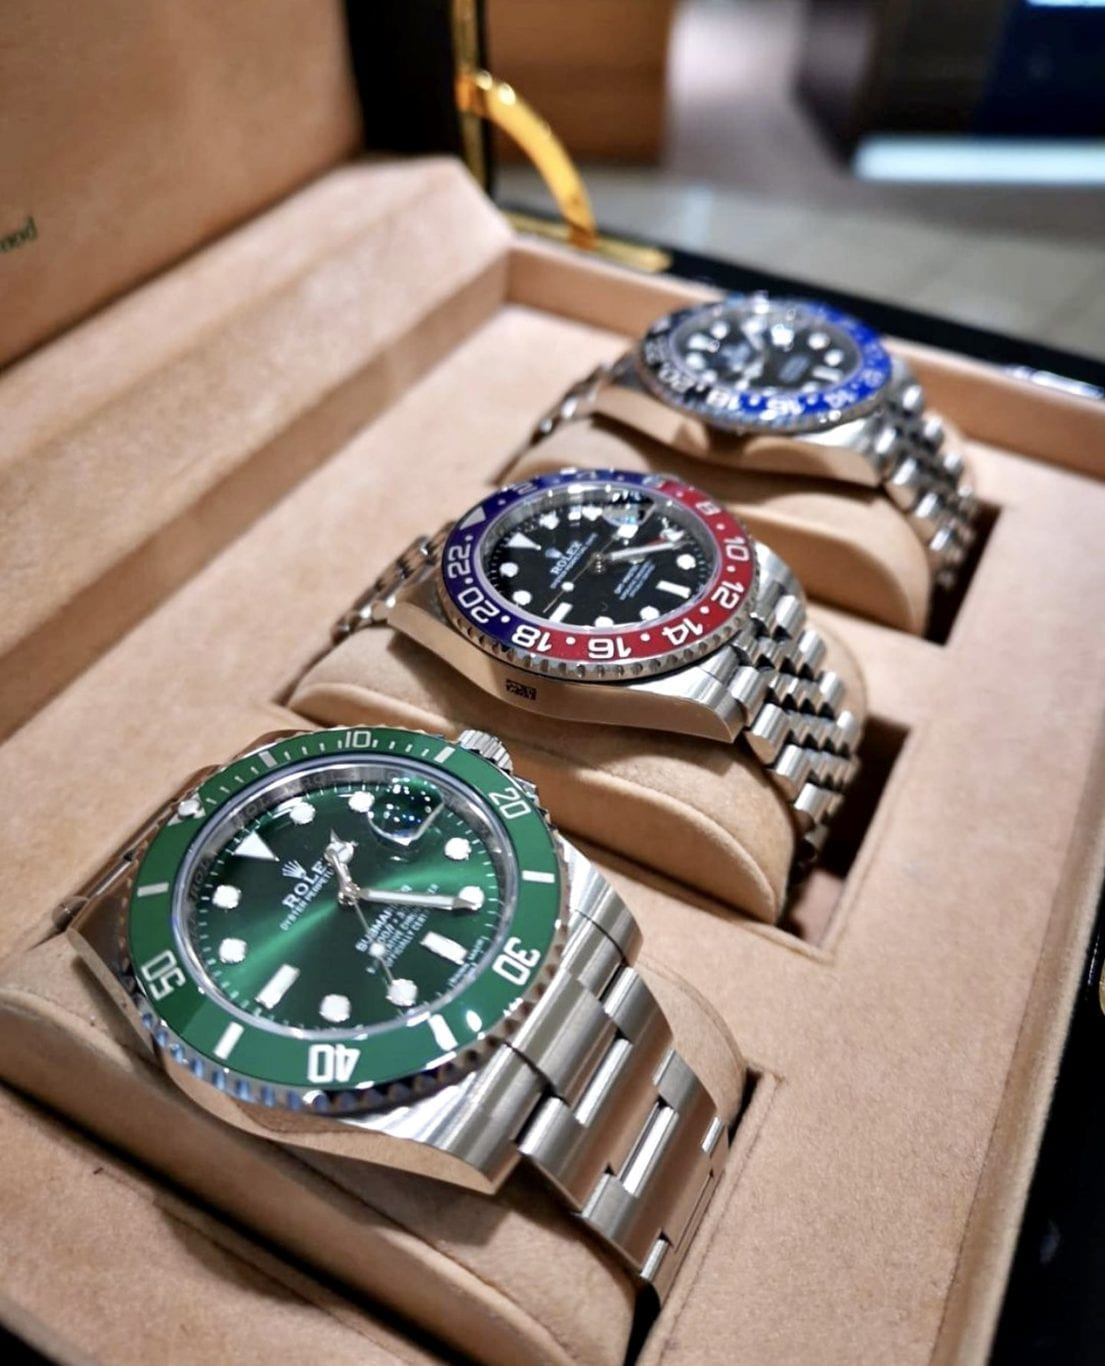 ROLEX WATCHES ""